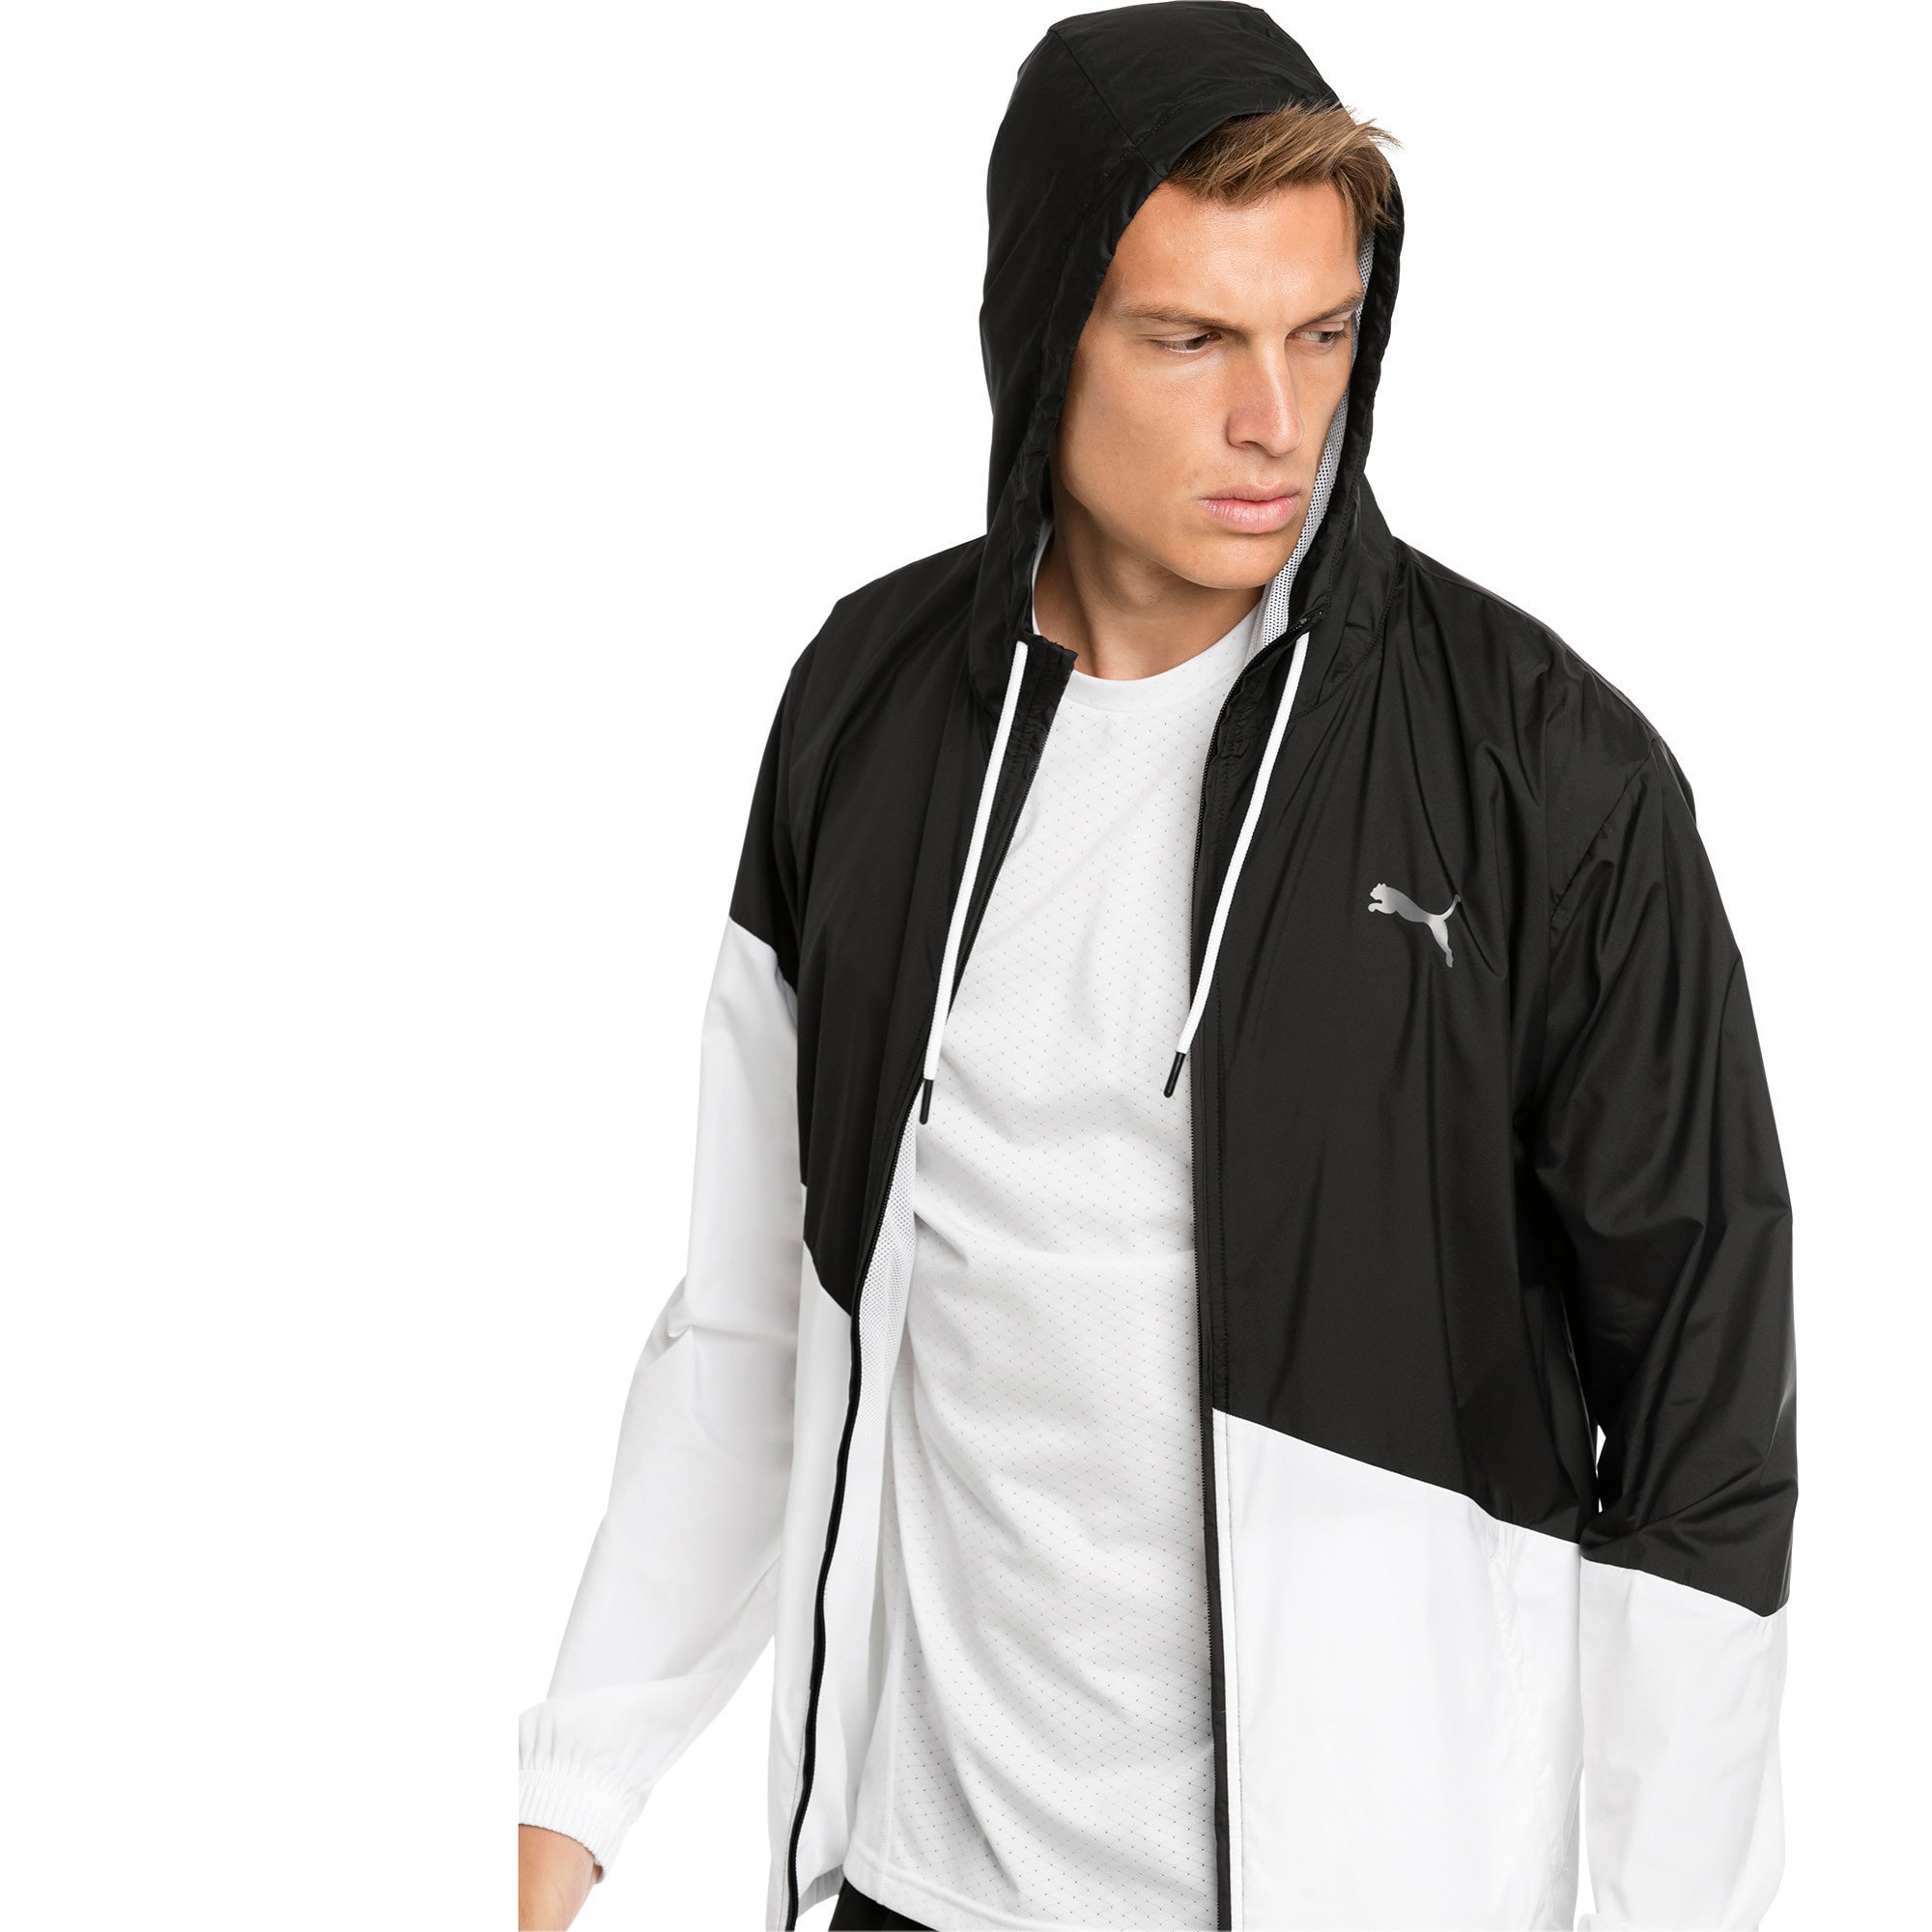 Thumbnail 4 of A.C.E. Men's Windbreaker, Puma Black-Puma White, medium